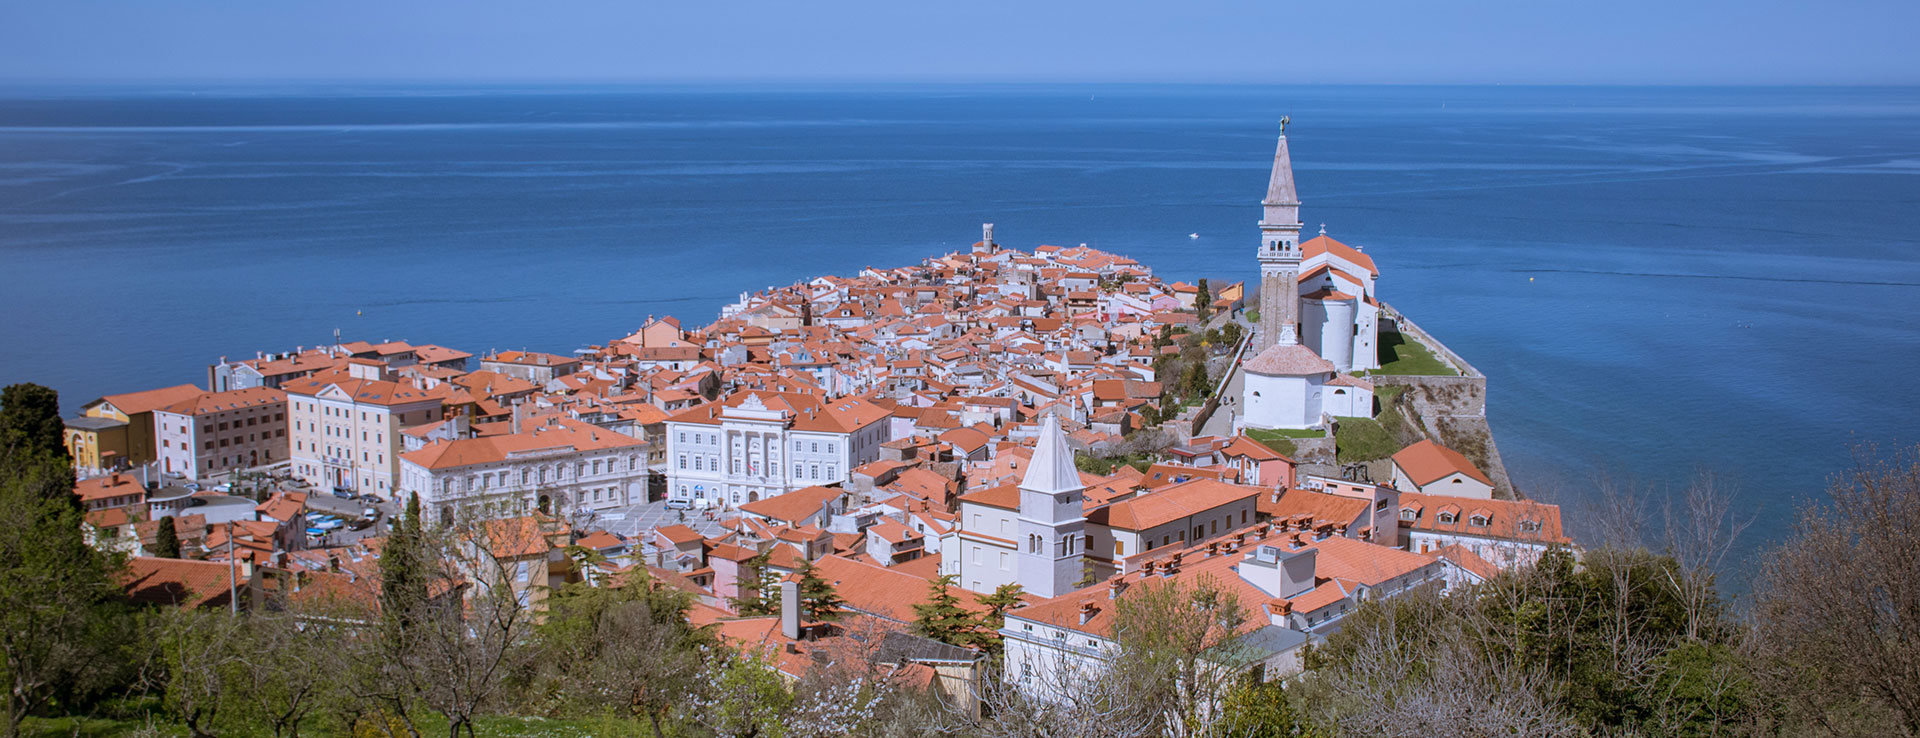 Piran – must see tourist attractions